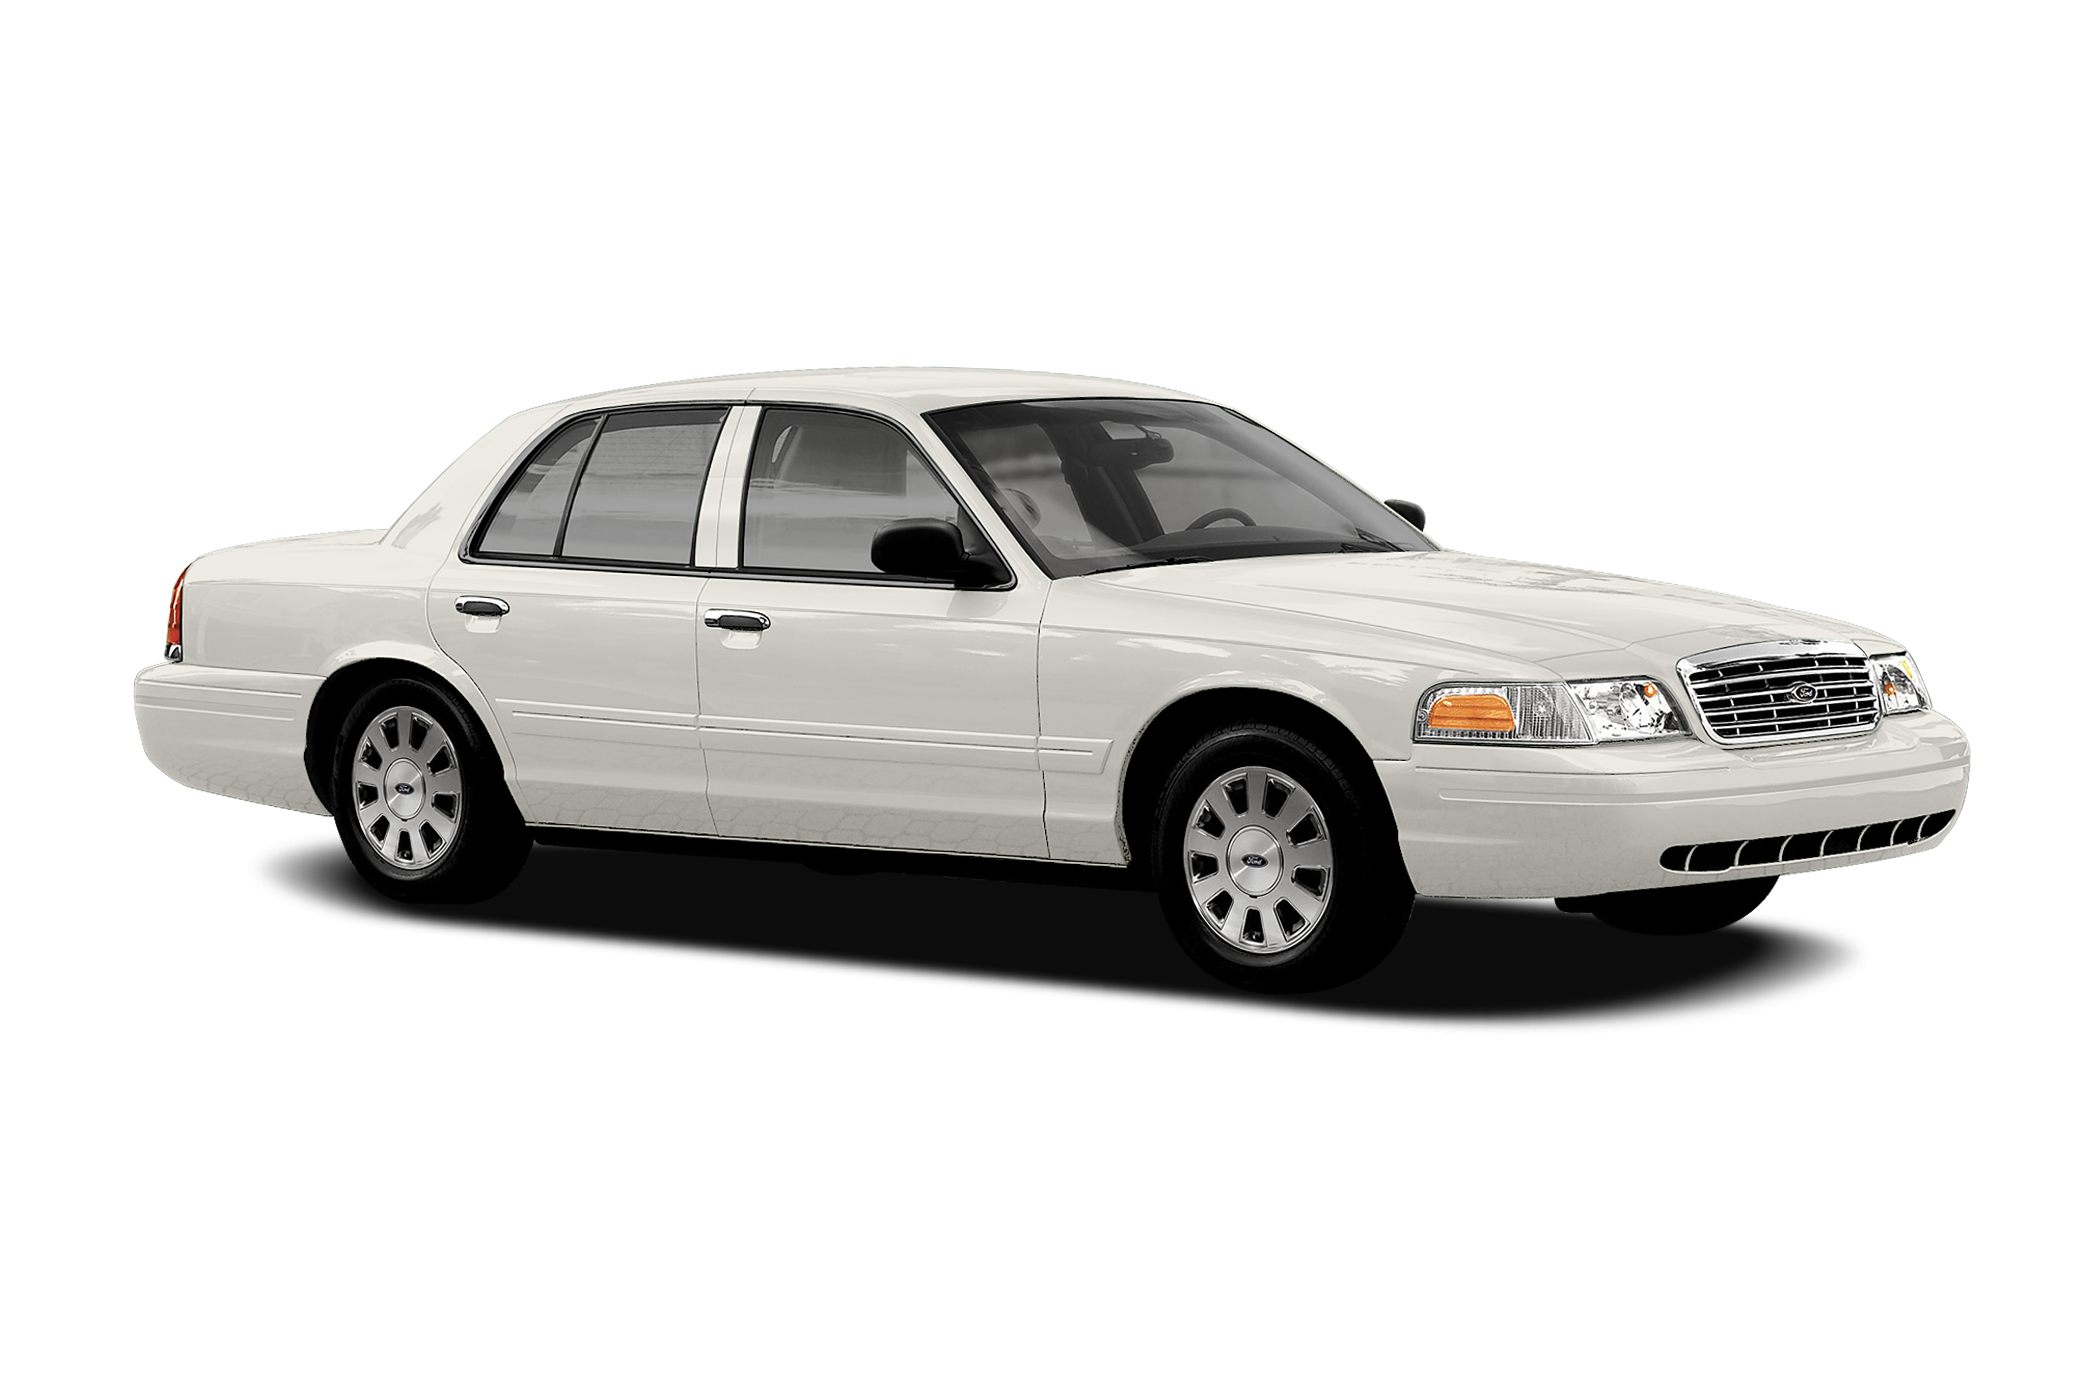 2007 Ford Crown Victoria 4dr